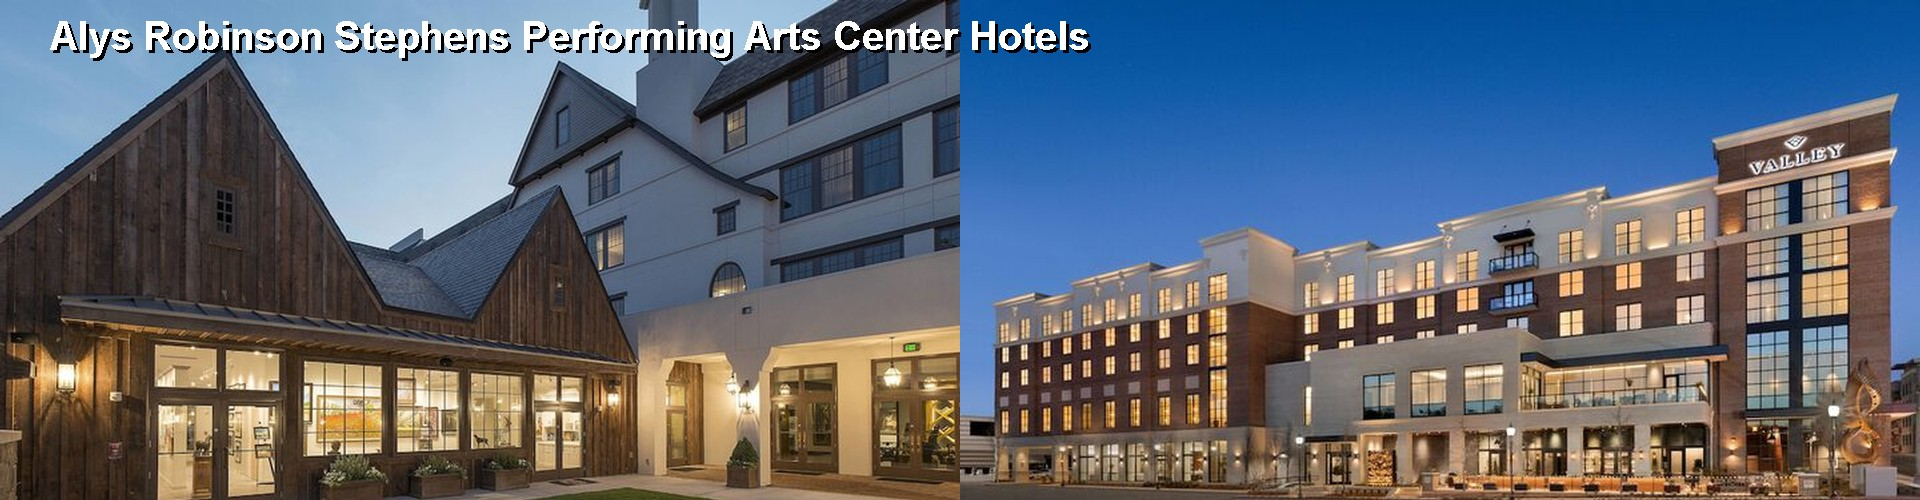 5 Best Hotels near Alys Robinson Stephens Performing Arts Center